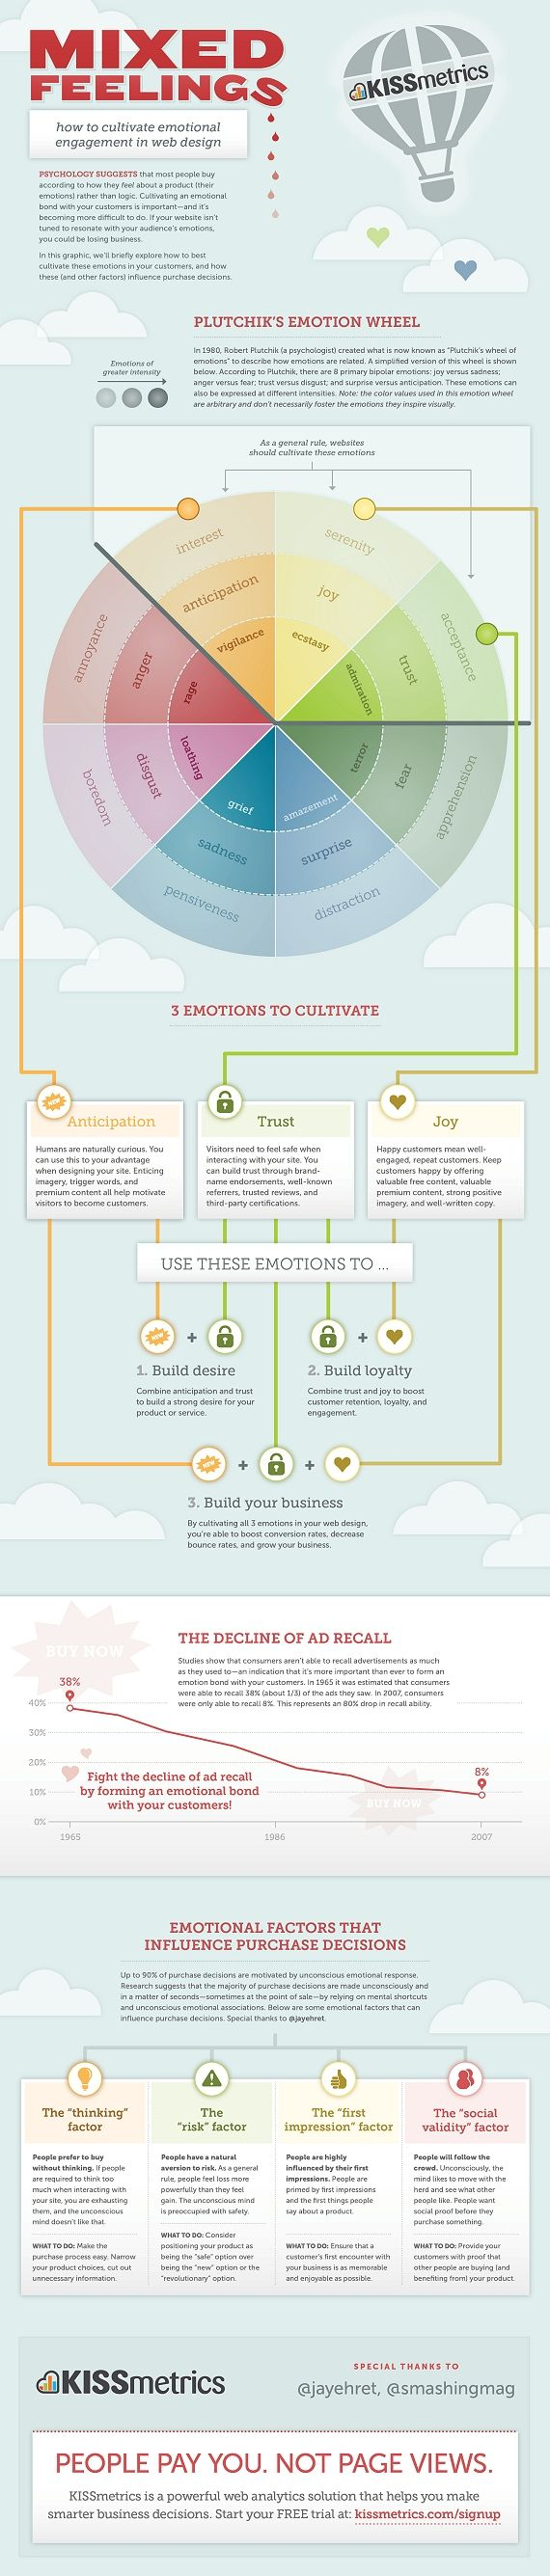 Mixed Feelings – How To Cultivate Emotional Engagement In Web Design #kissmetrics